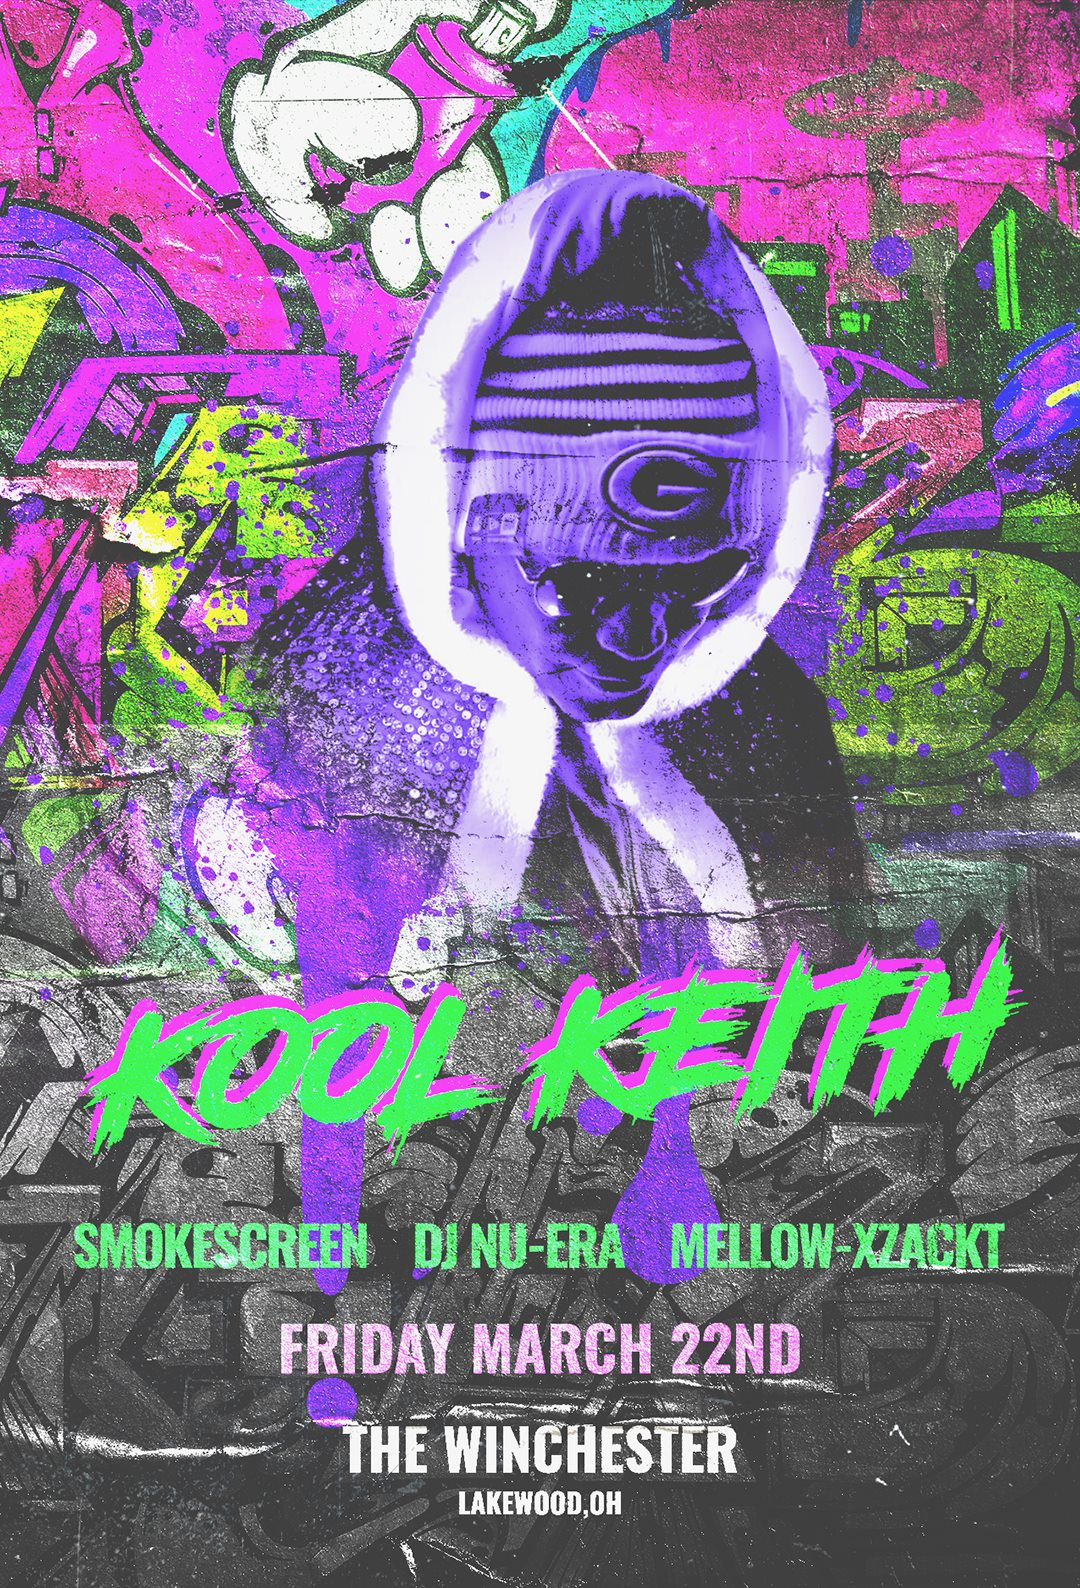 Kool Keith - SmokeScreen DJ Nu•ERA MELLOW-XZACKT